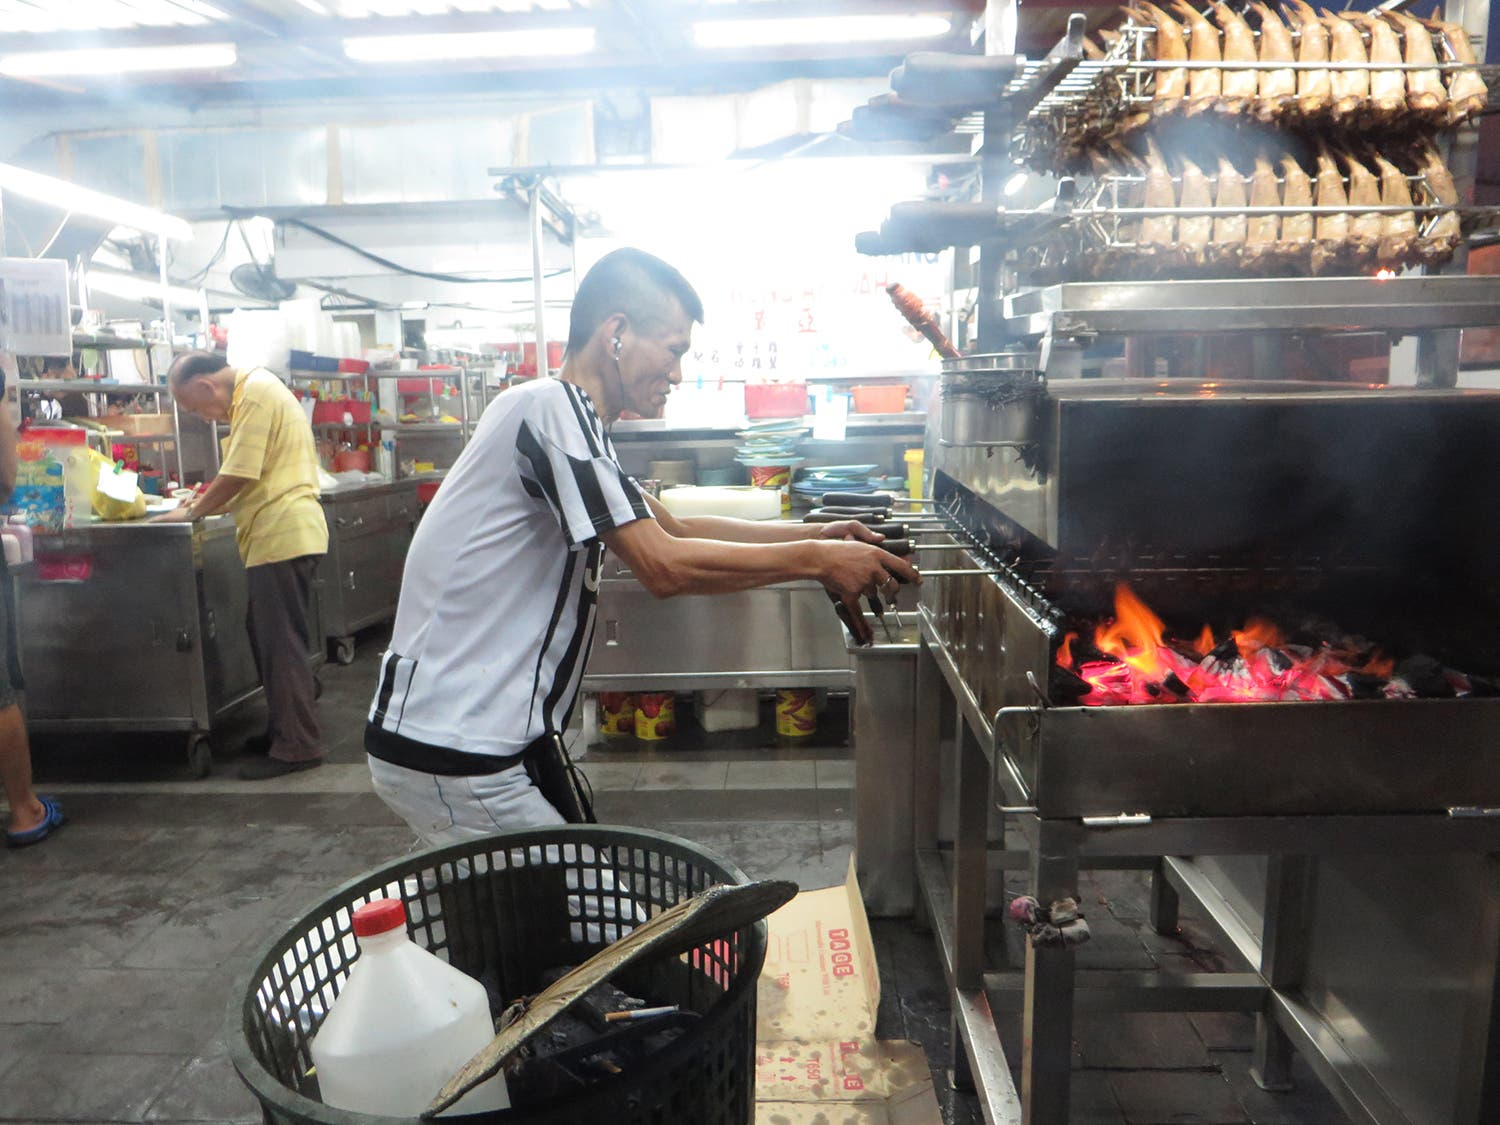 A man tends to chicken wings cooking at a Malaysian street food market (Photo: Peter Harrison)